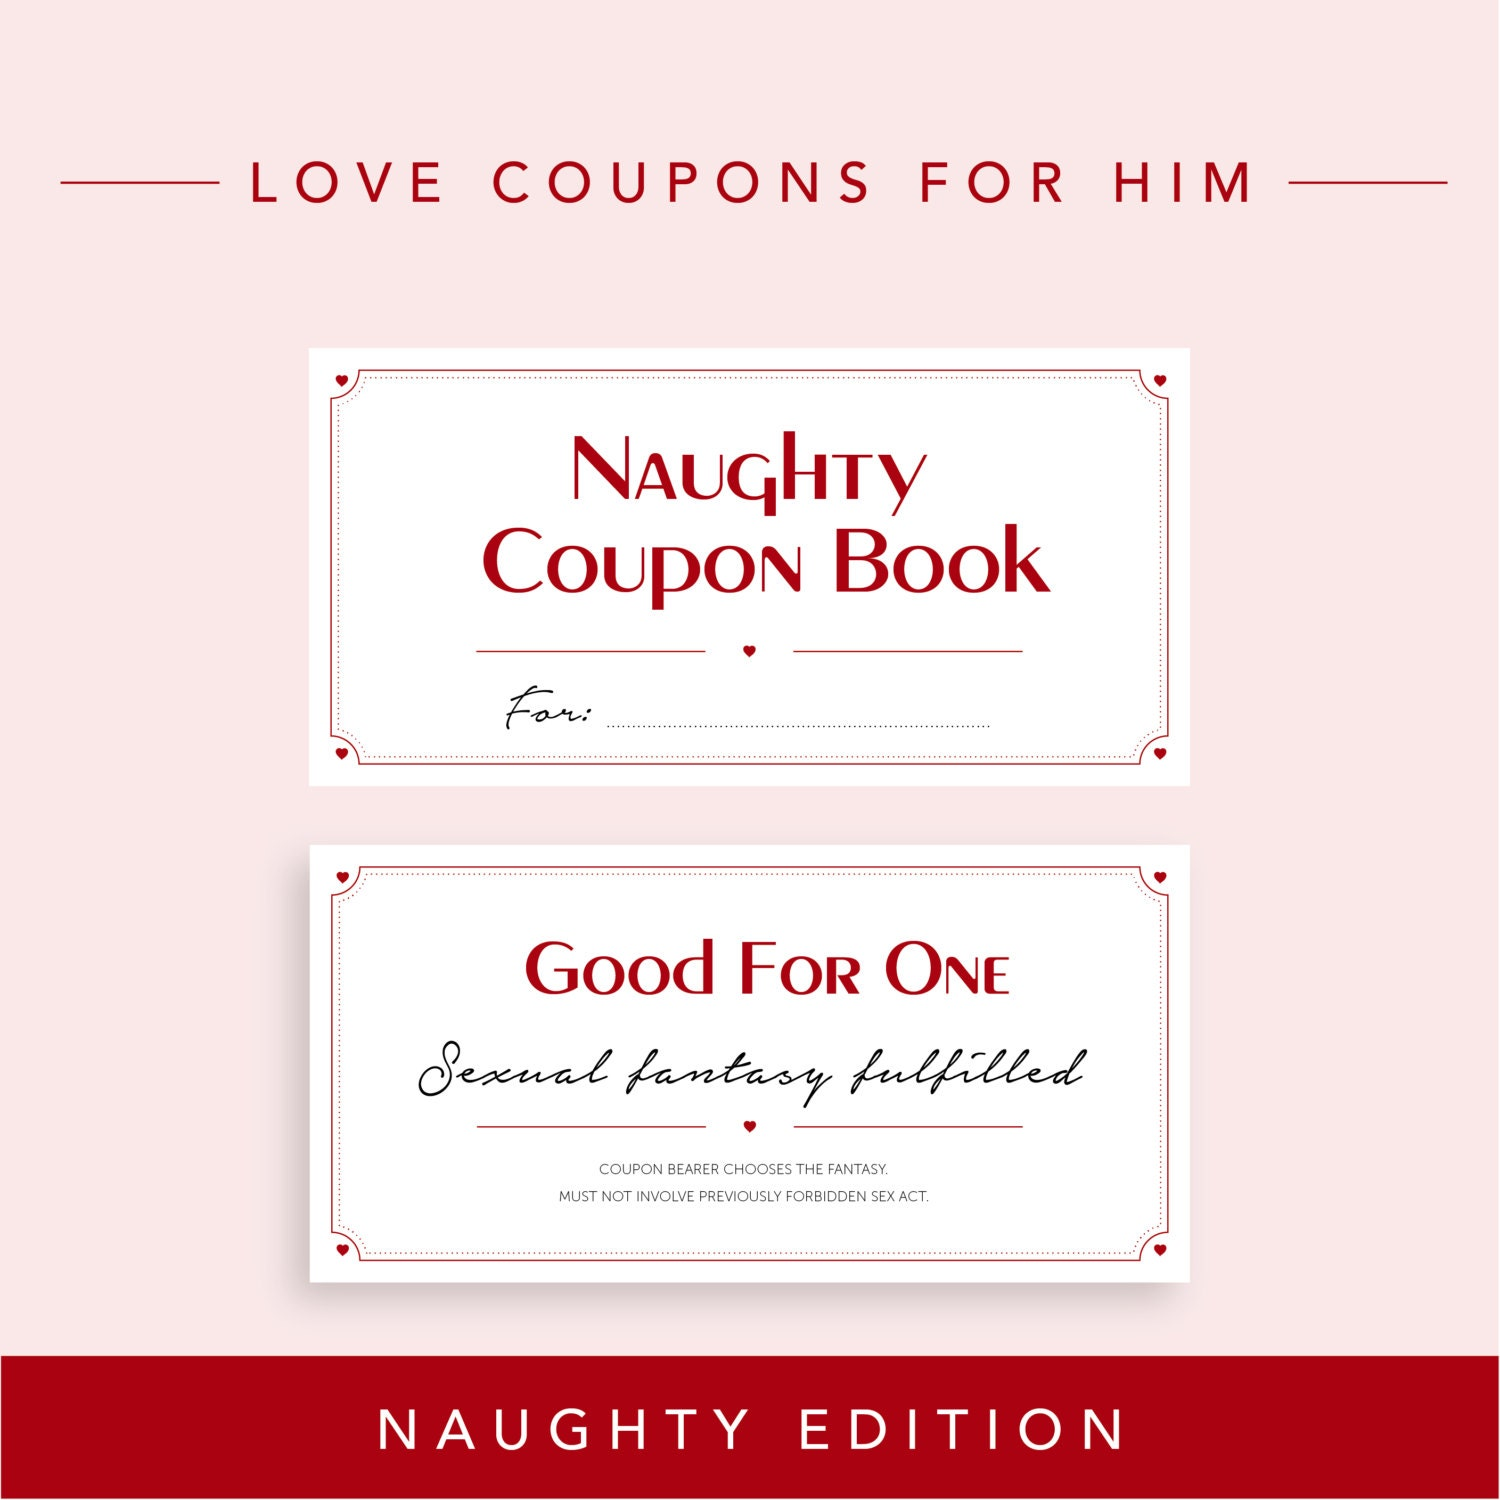 Naughty edition love coupons for boyfriend valentine 39 s for Love coupons for him template